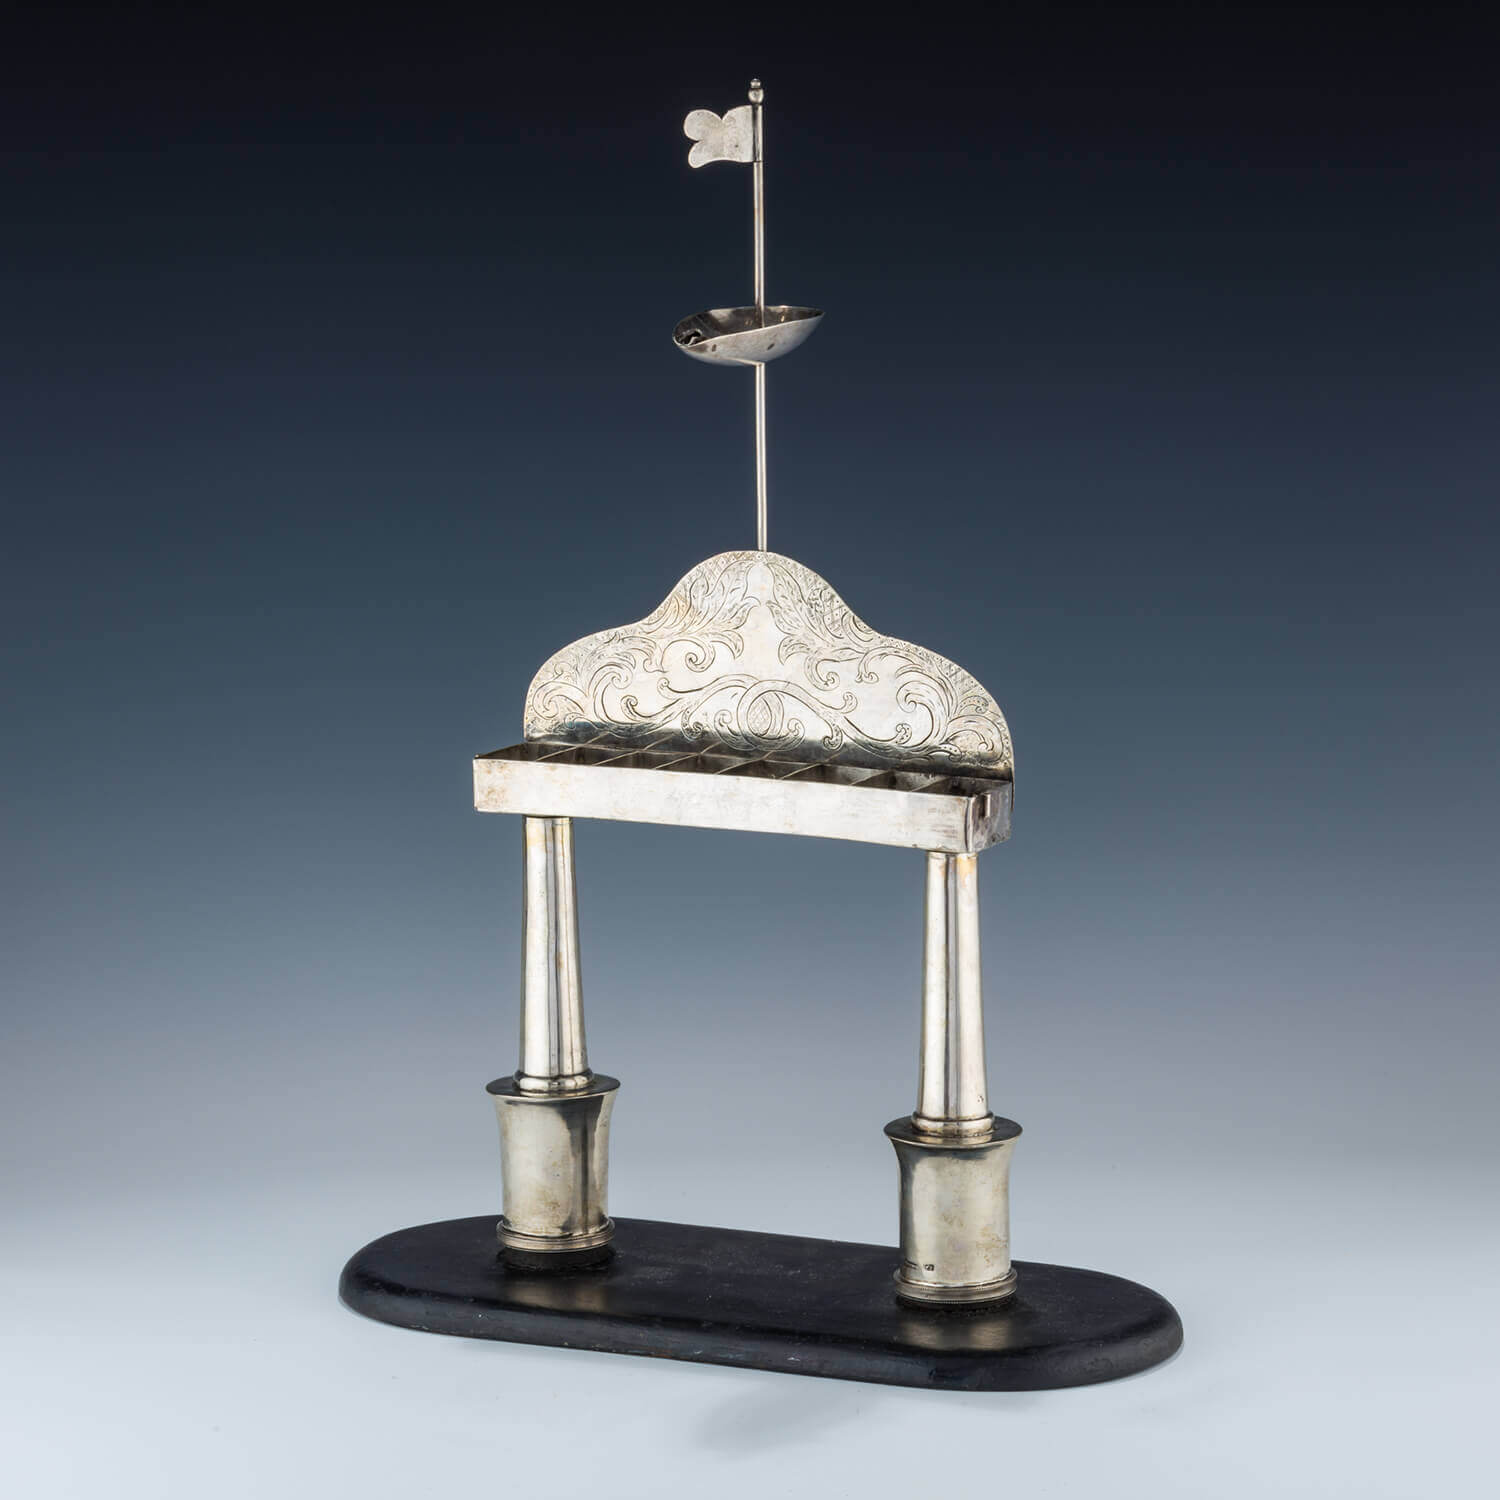 128. A RARE AND IMPORTANT SILVER HANUKKAH MENORAH BY BERGER